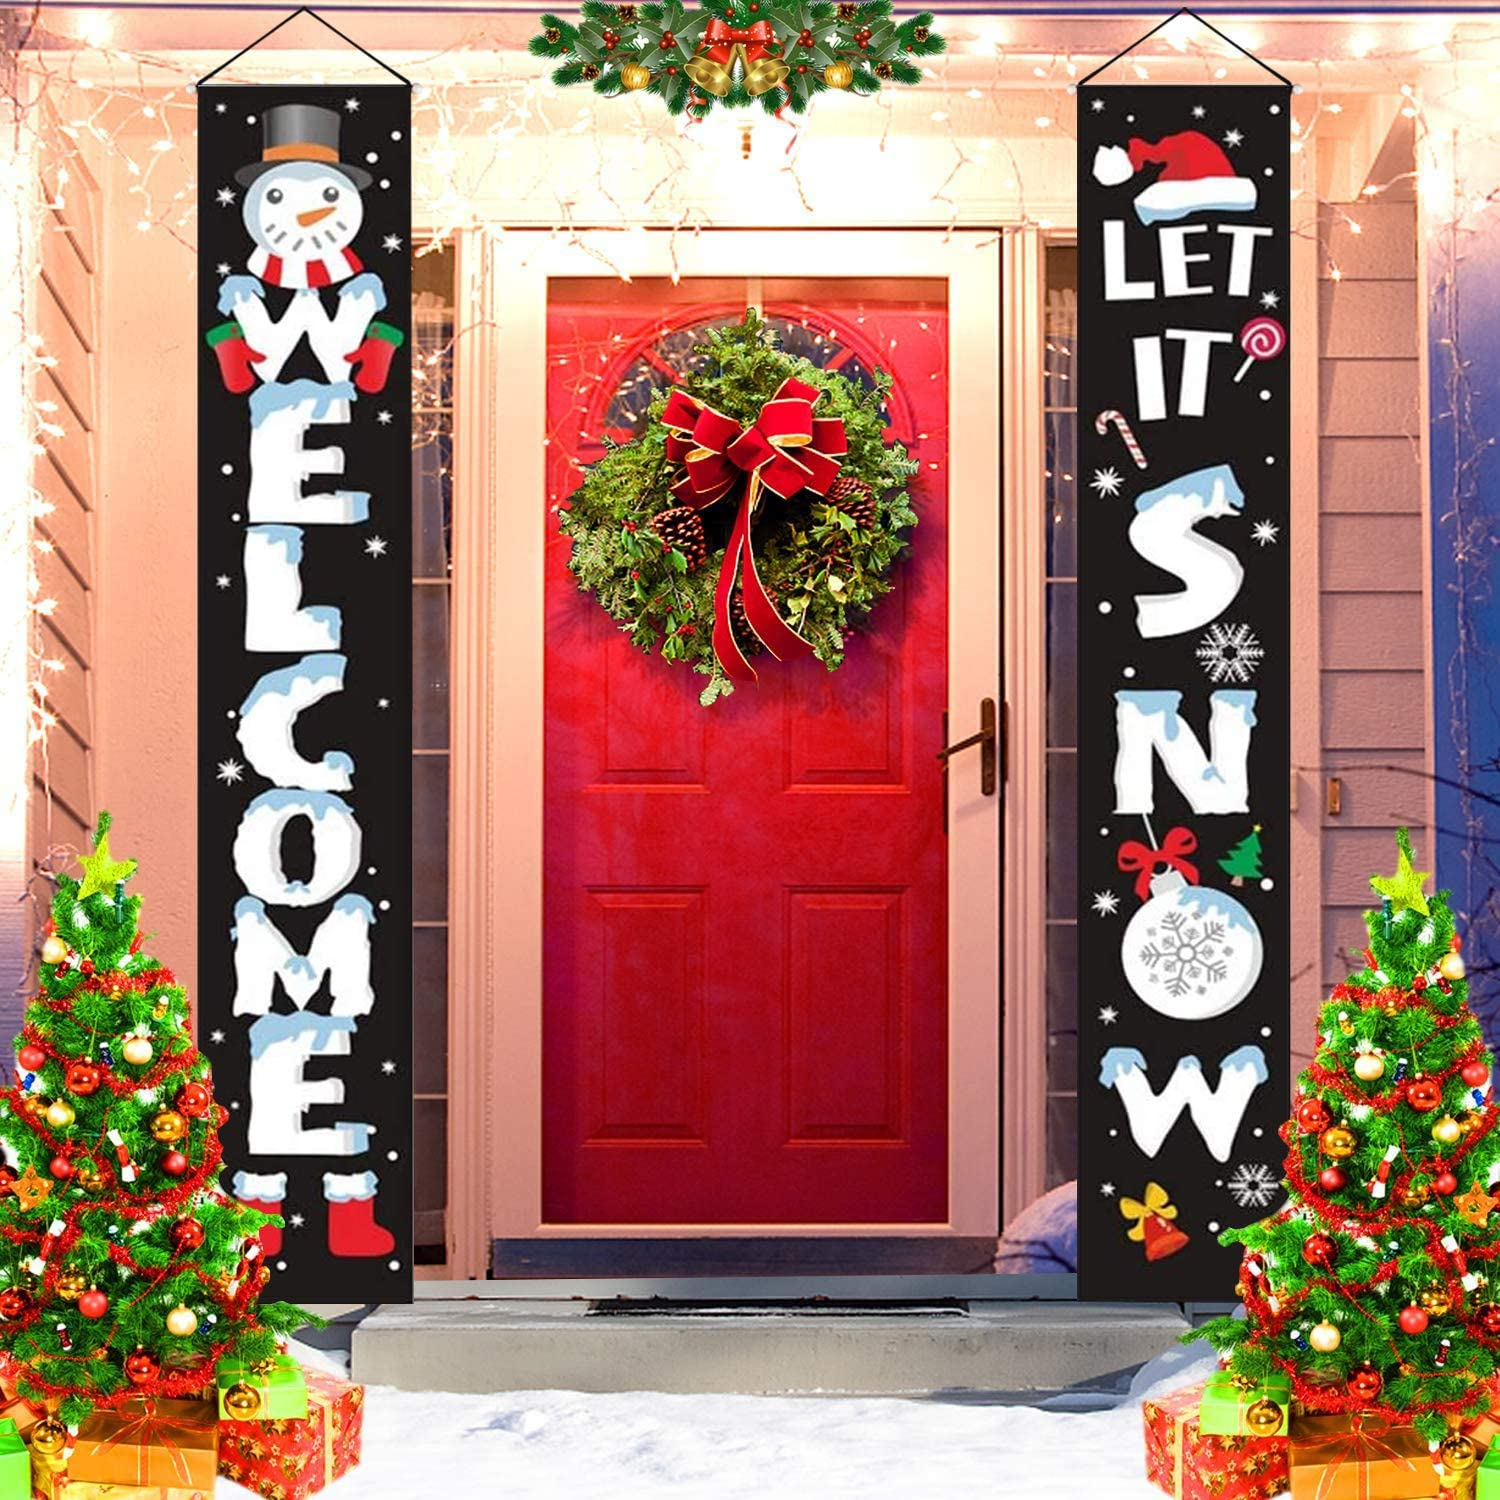 Christmas Decorations Outdoor - Xmas Porch Sign Banners- Welcome Let it Snow Holiday Decor for Front Door Indoor Yard Home Garage Wall Outside (Black)